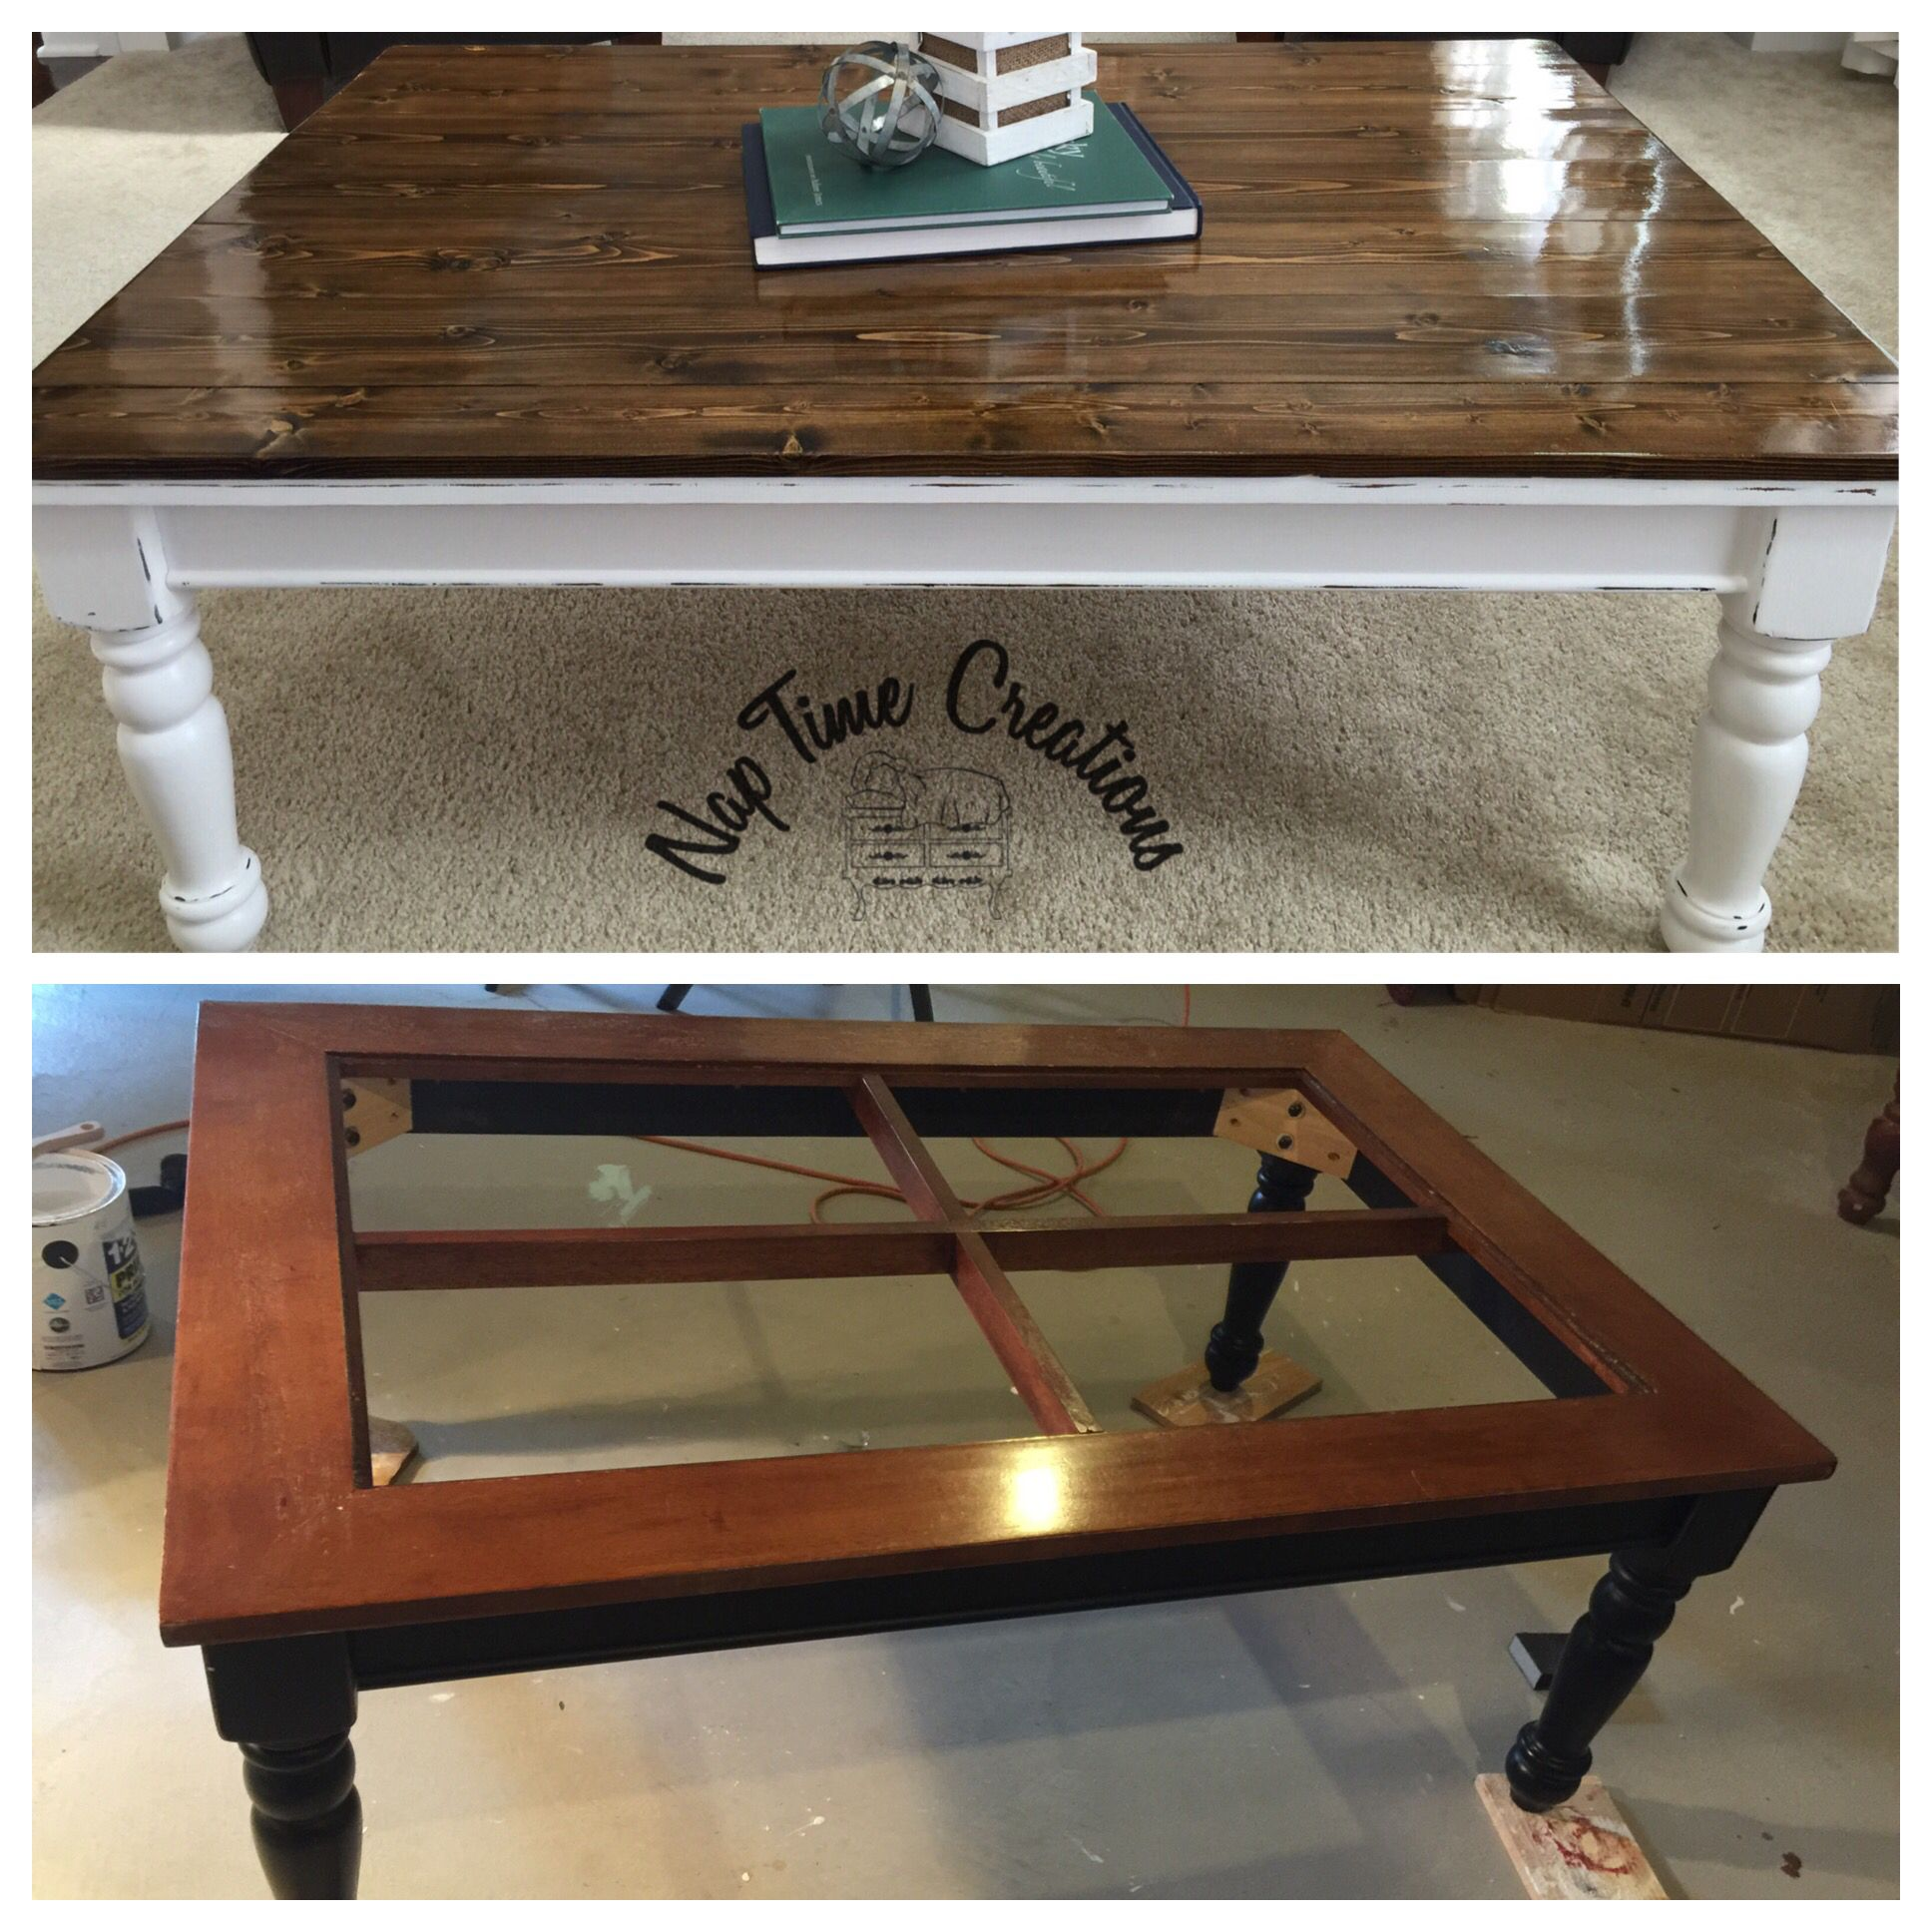 Glass Coffee Tables Commonly Found In The Home Coffee Table